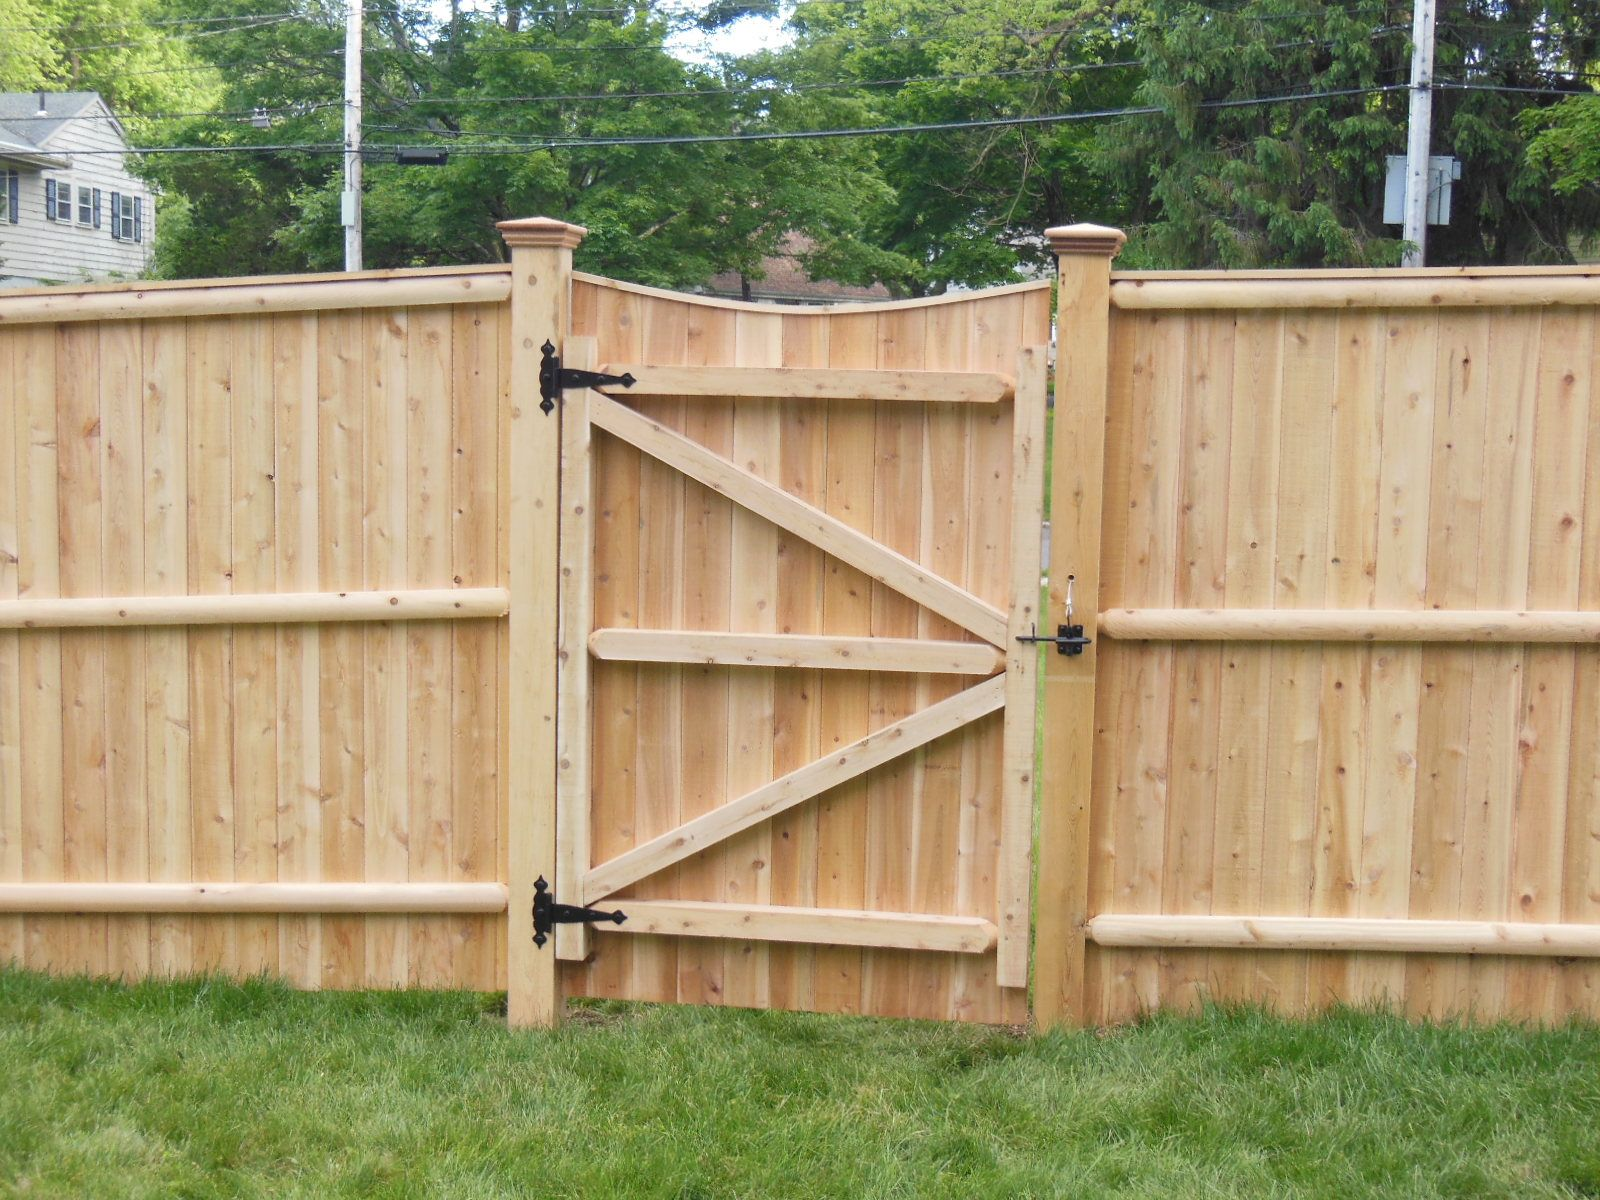 Fence Gate Designs | Cedar Lattice with Gate | Fences Boston, MA ...